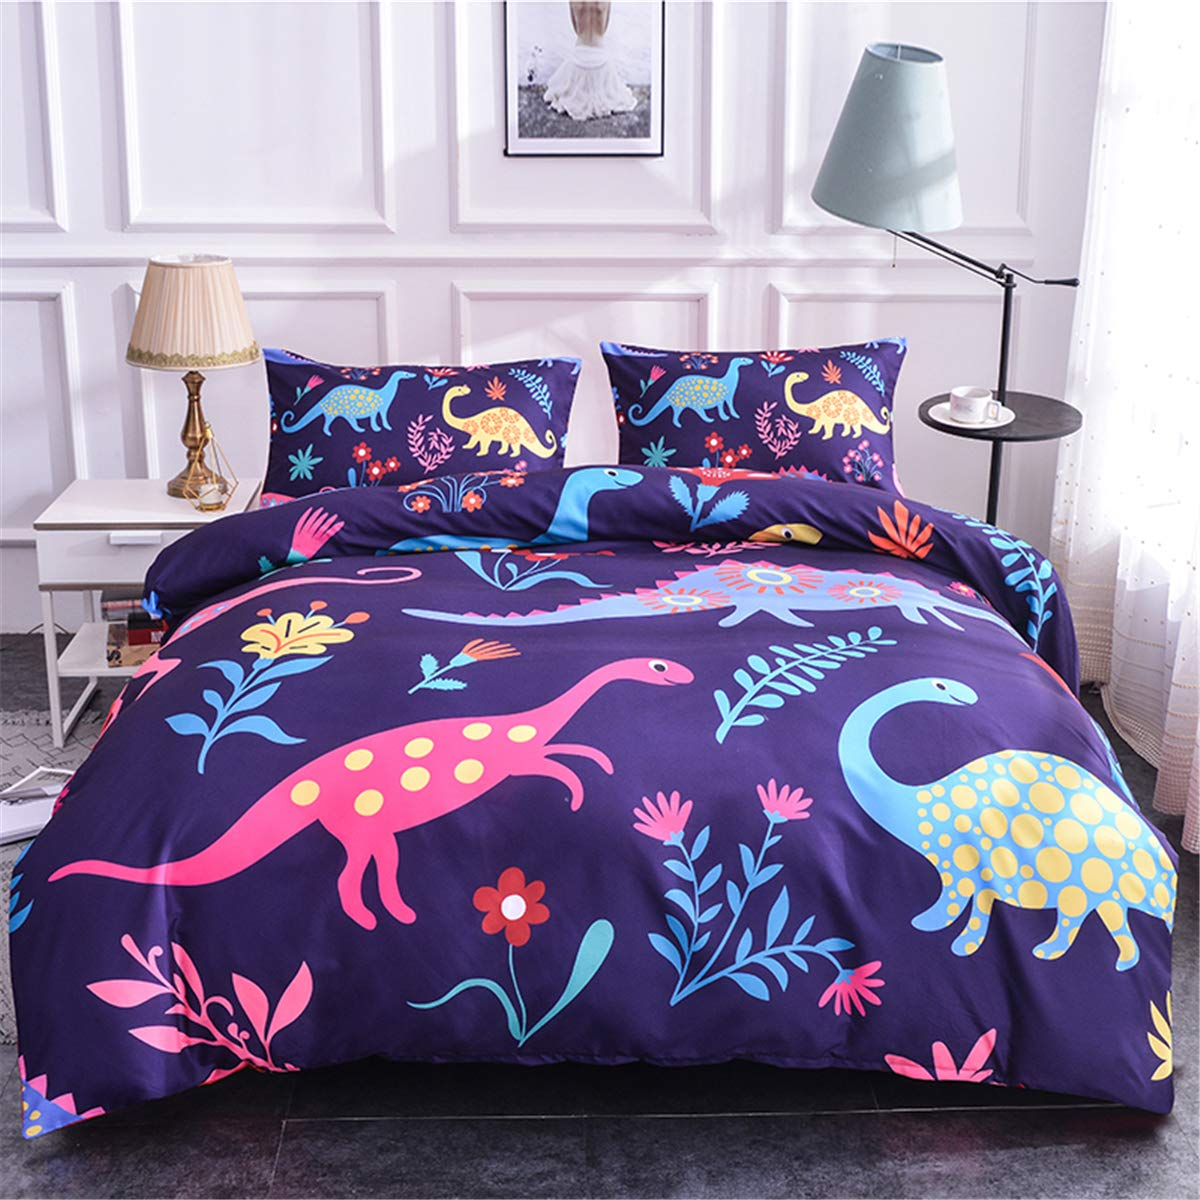 Dinosaur Flamingo Printed Boys Duvet Cover Set Twin Microfiber Puppy Floral Universal Animal Theme Cartoon Kids Girls 3D Bedding Sets (Dinosaur,Twin)